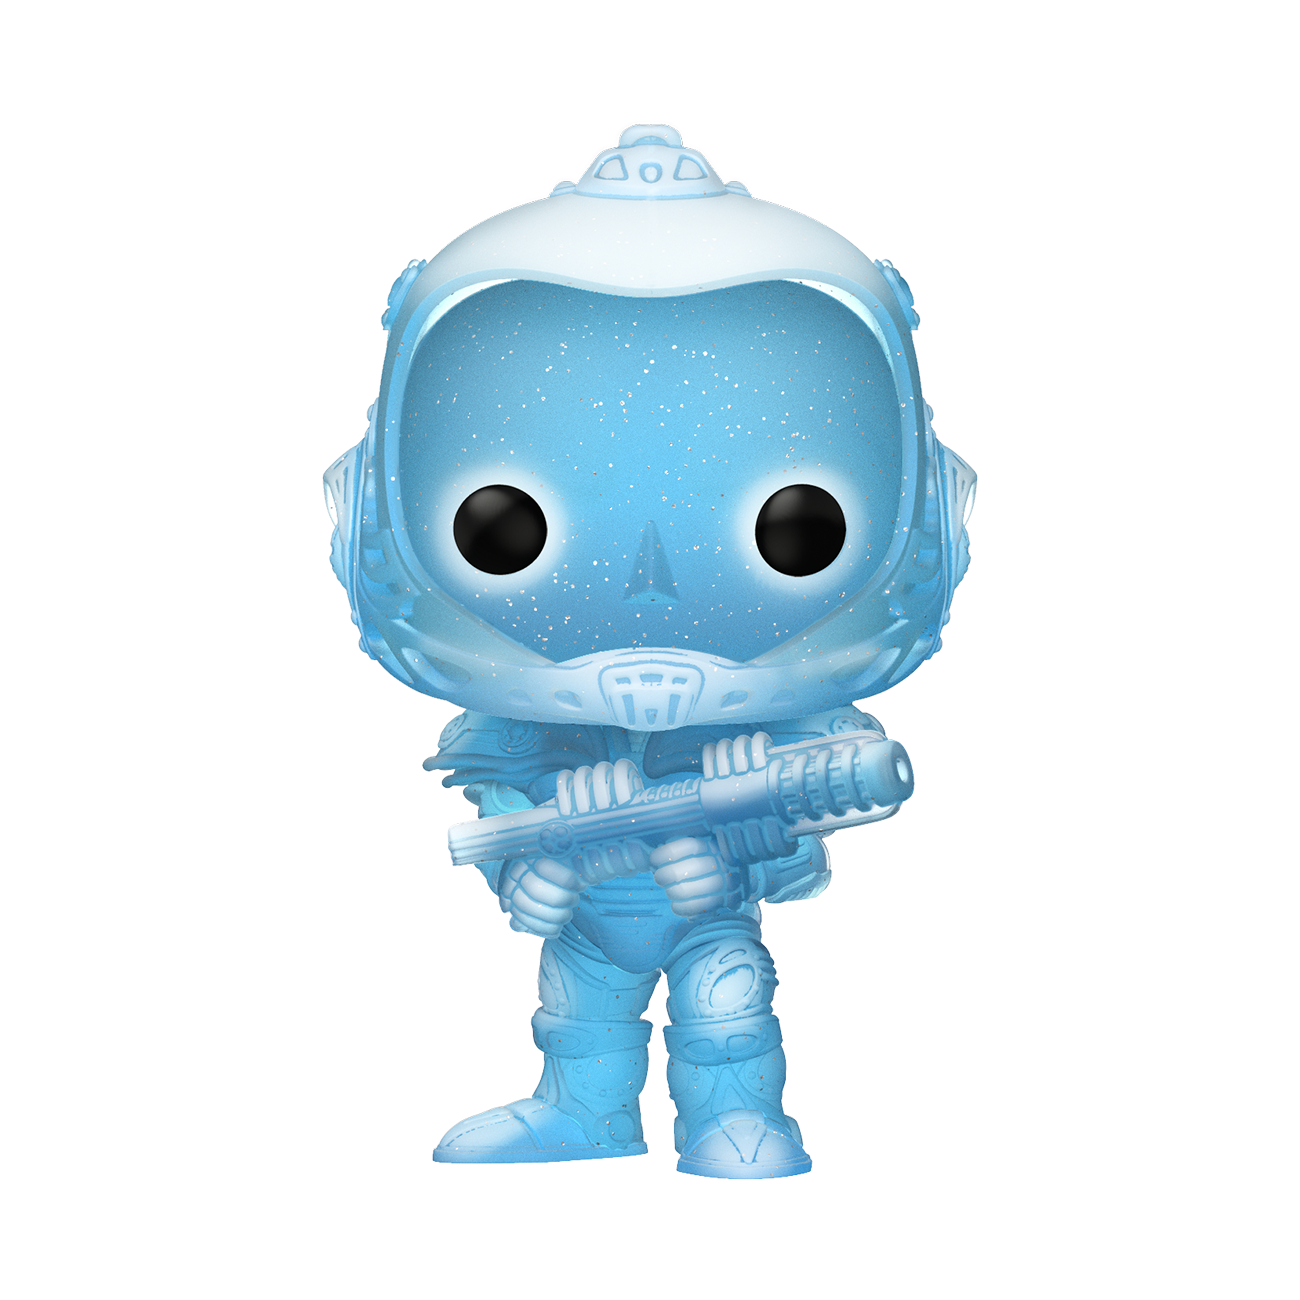 Funko Batman and Robin - Mr Freeze Glittered Summer Convention 2020 Exclusive Pop! Vinyl Figure